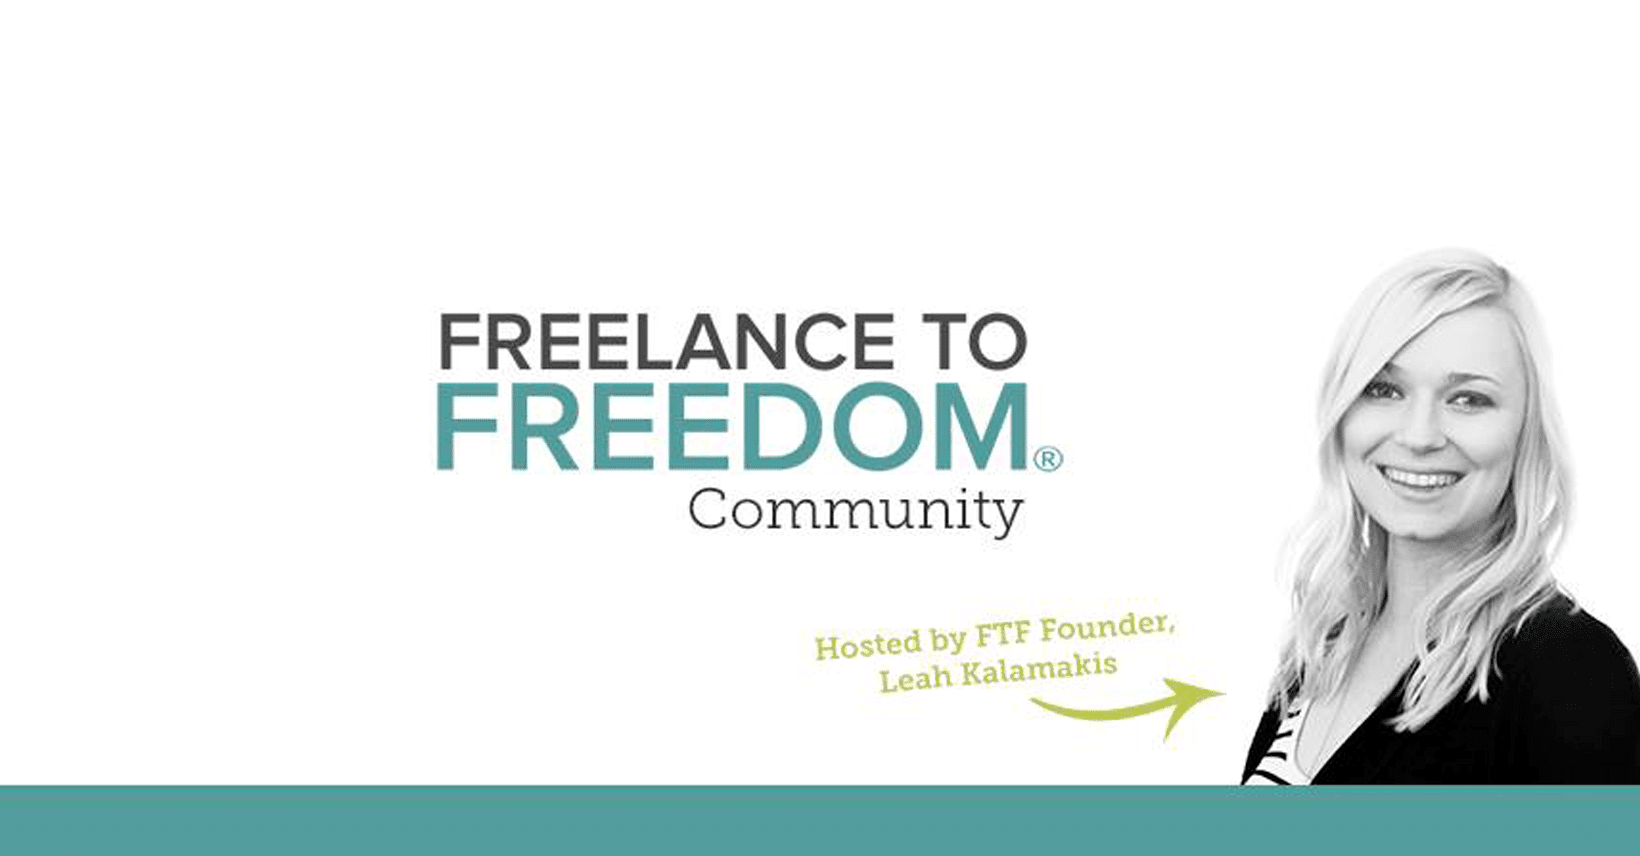 Freelance To Freedom Project Community